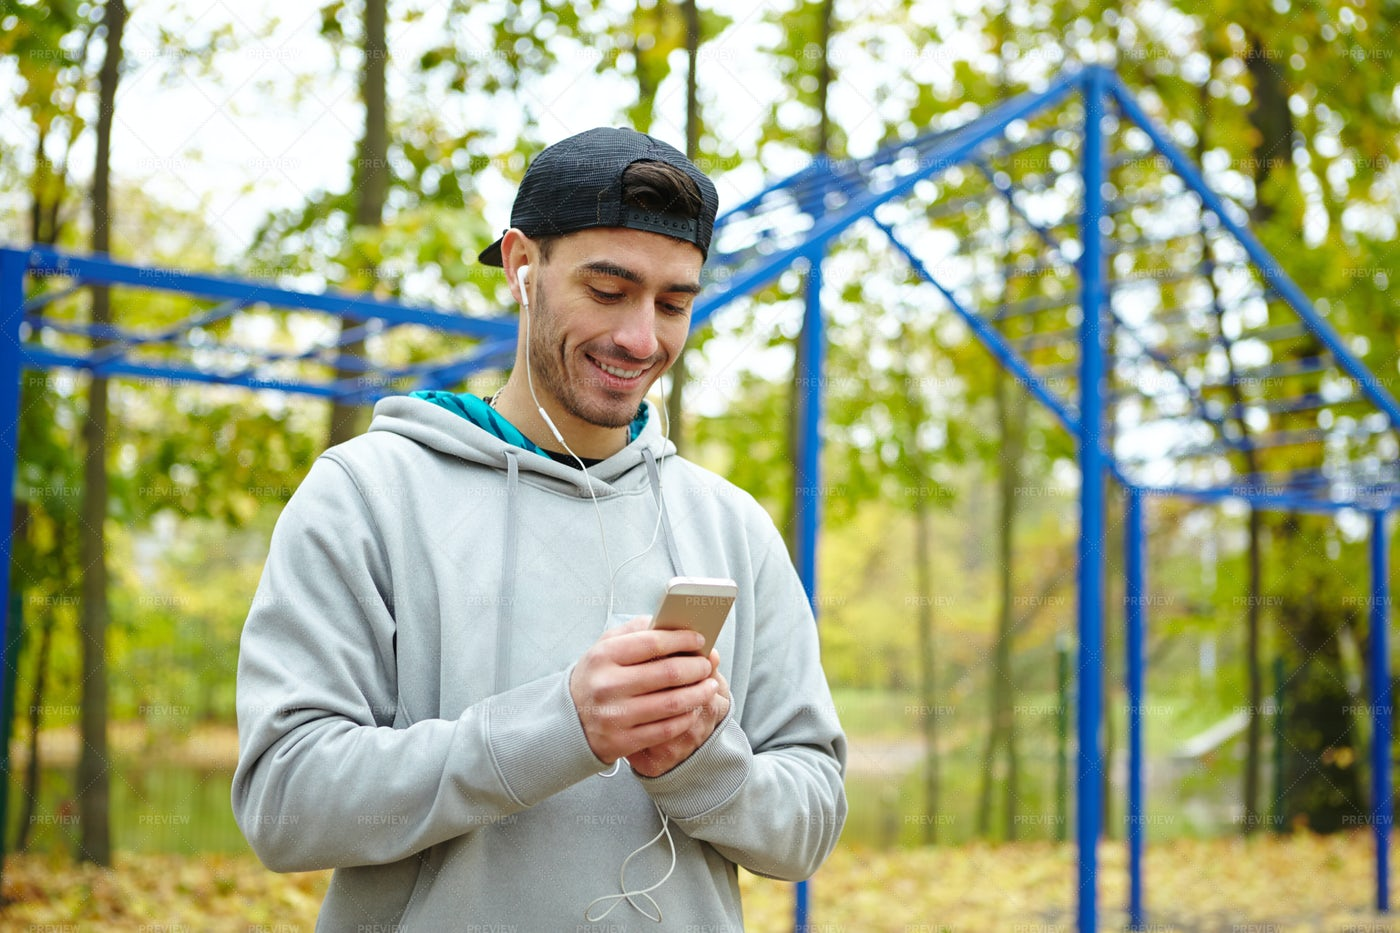 Sportsman Psych Himself Up For Workout: Stock Photos